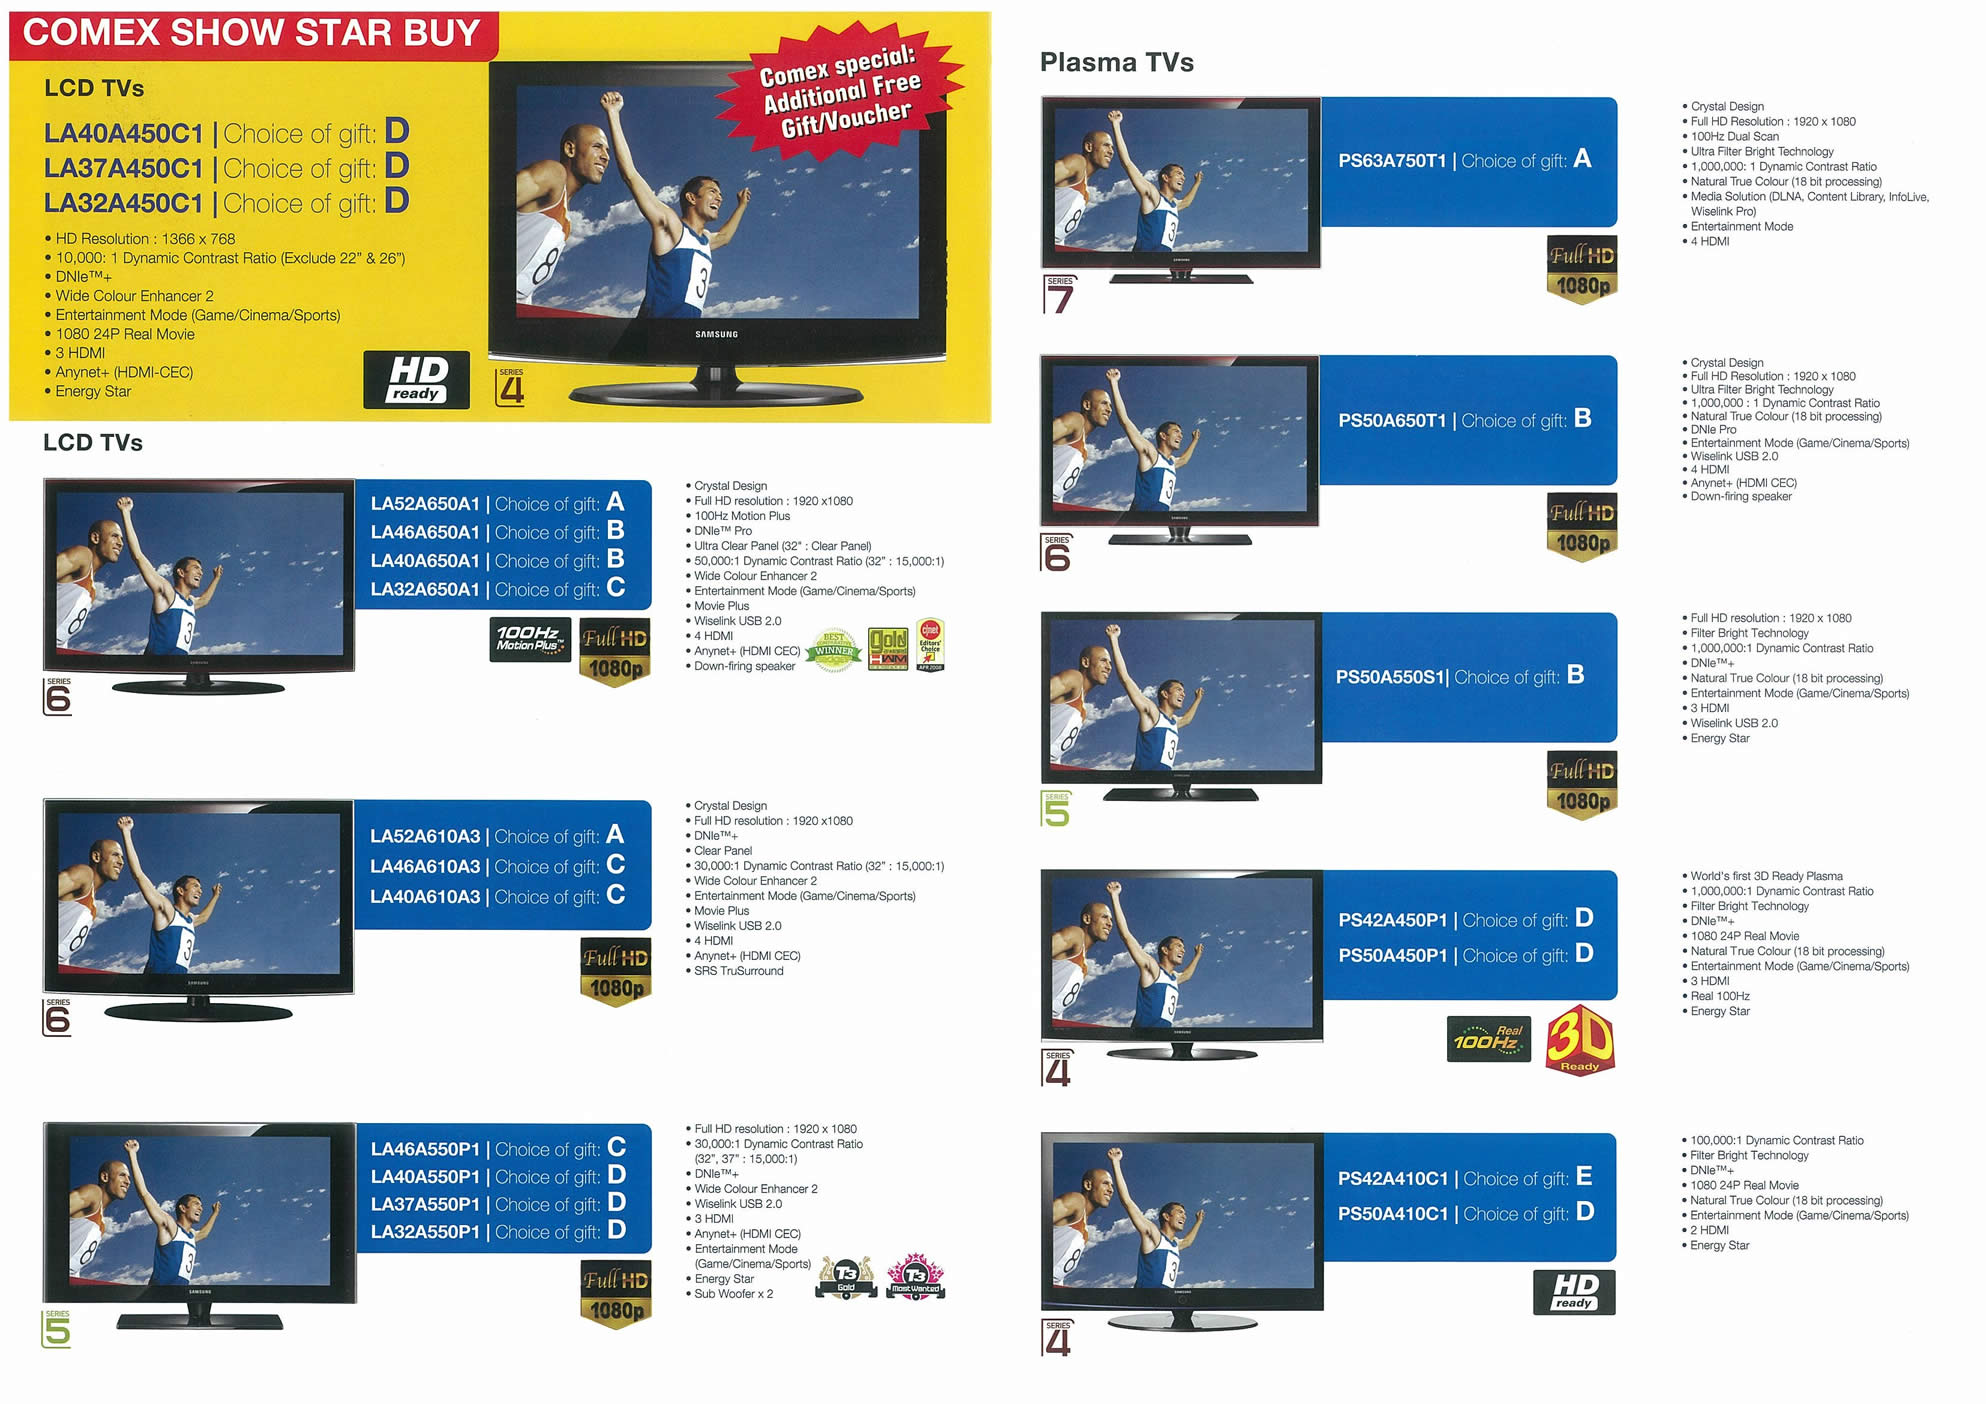 Comex 2008 price list image brochure of Samsung LCD TVs BEST Page 2